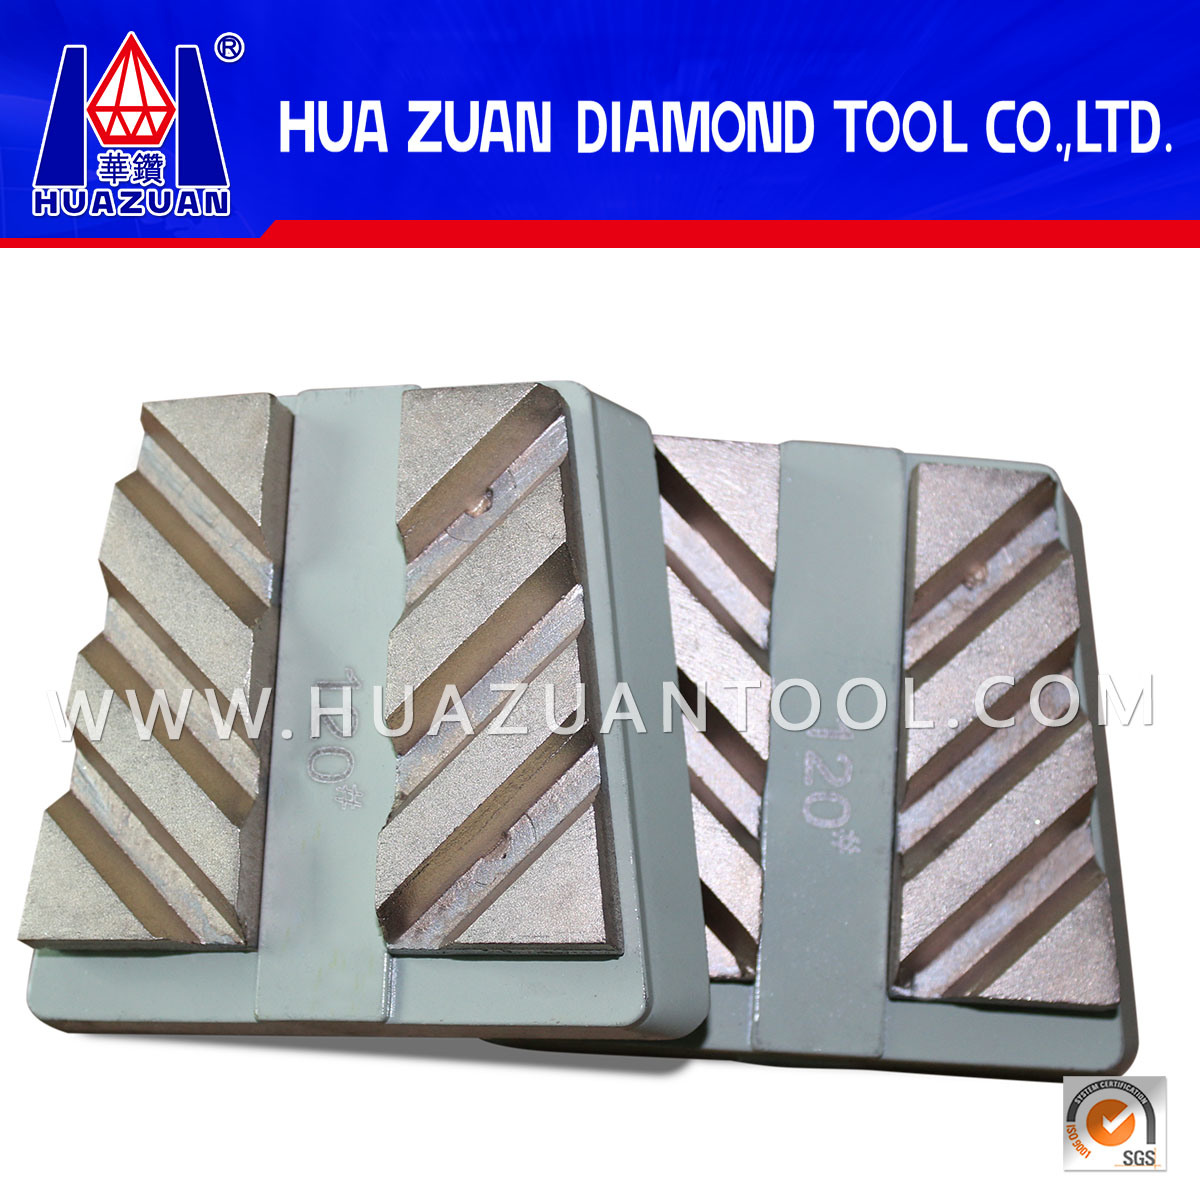 High Quality Diamond Frankfurt for Marble Grinding